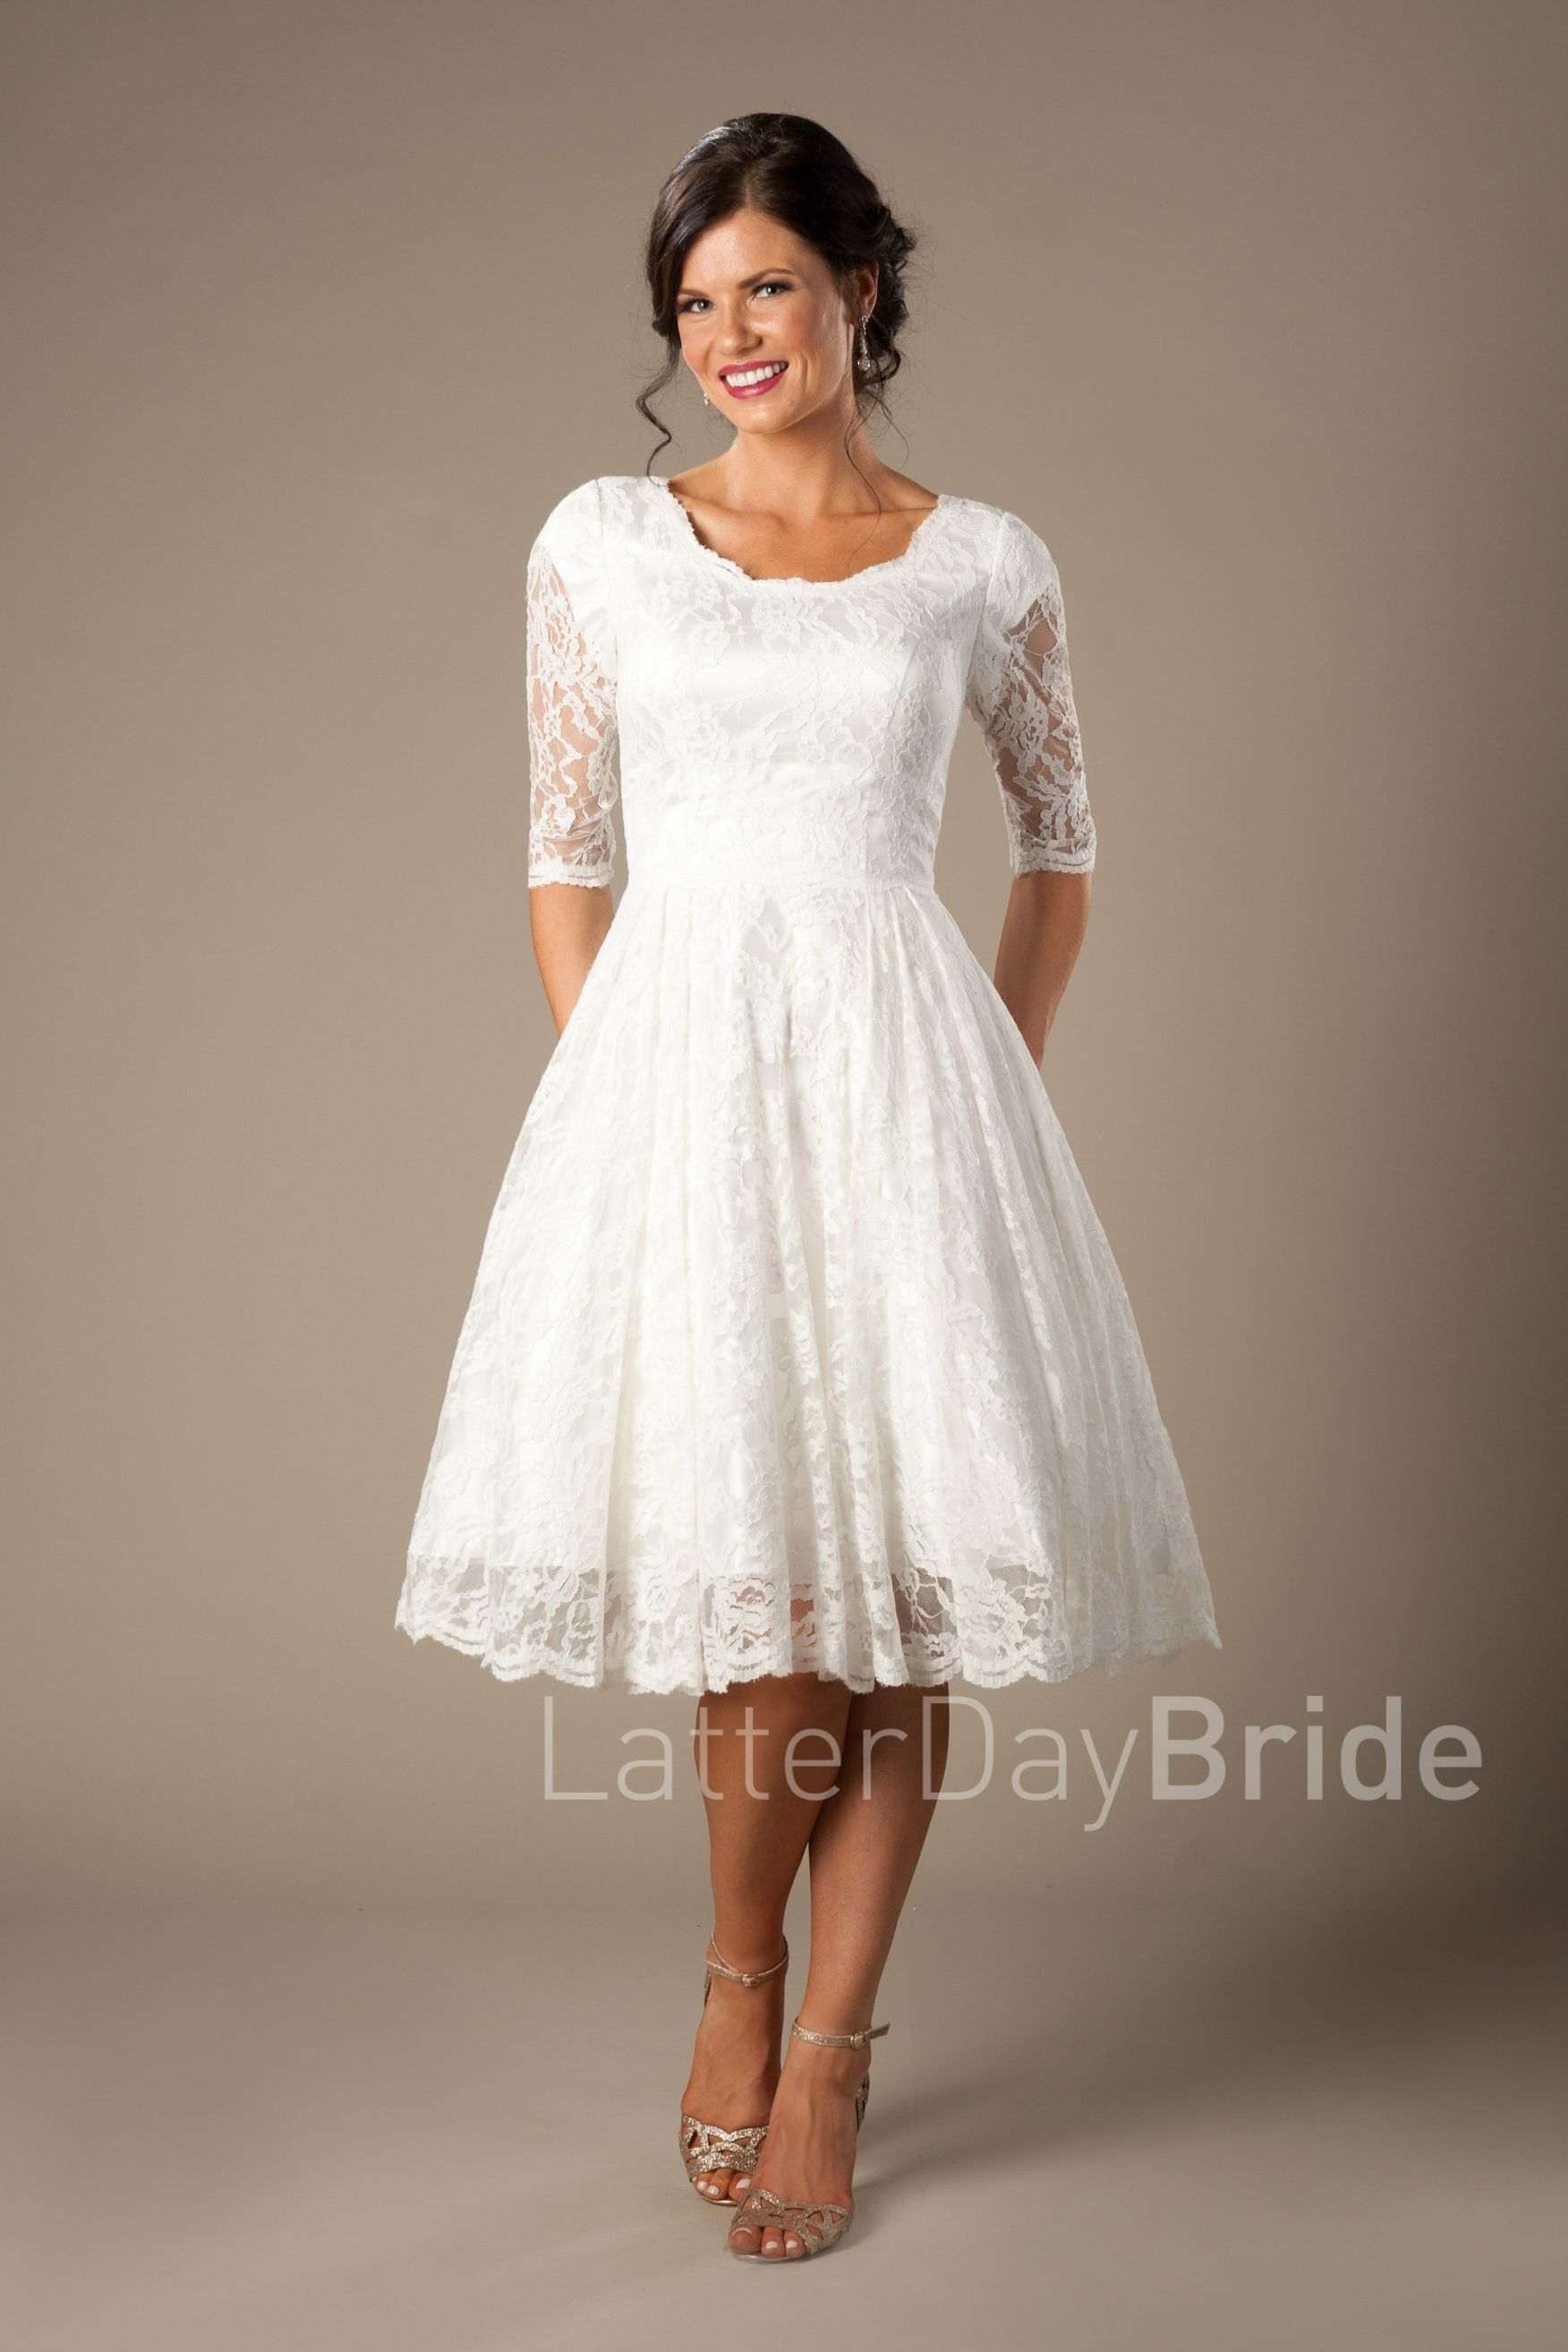 Quinn modest wedding dress latterdaybride prom slc for Mid length wedding dress